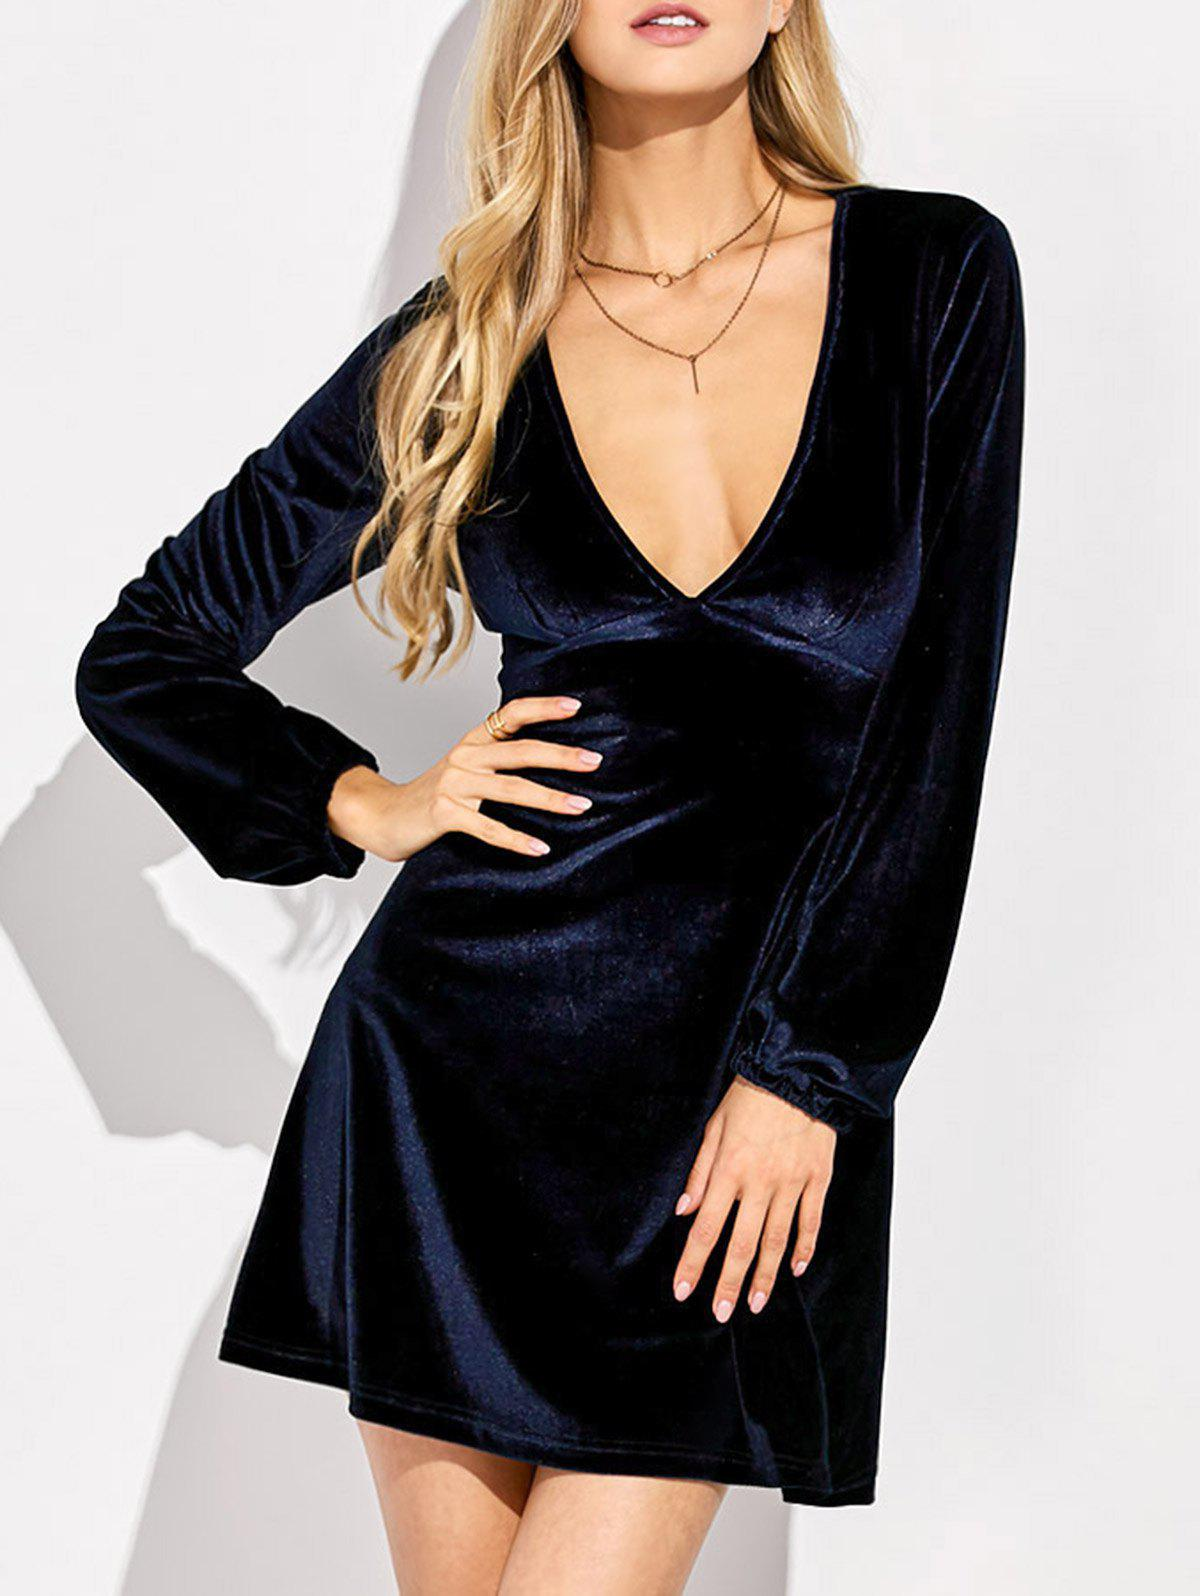 Empire Waist Velvet Long Sleeve Plunge Cocktail Dress - PURPLISH BLUE M